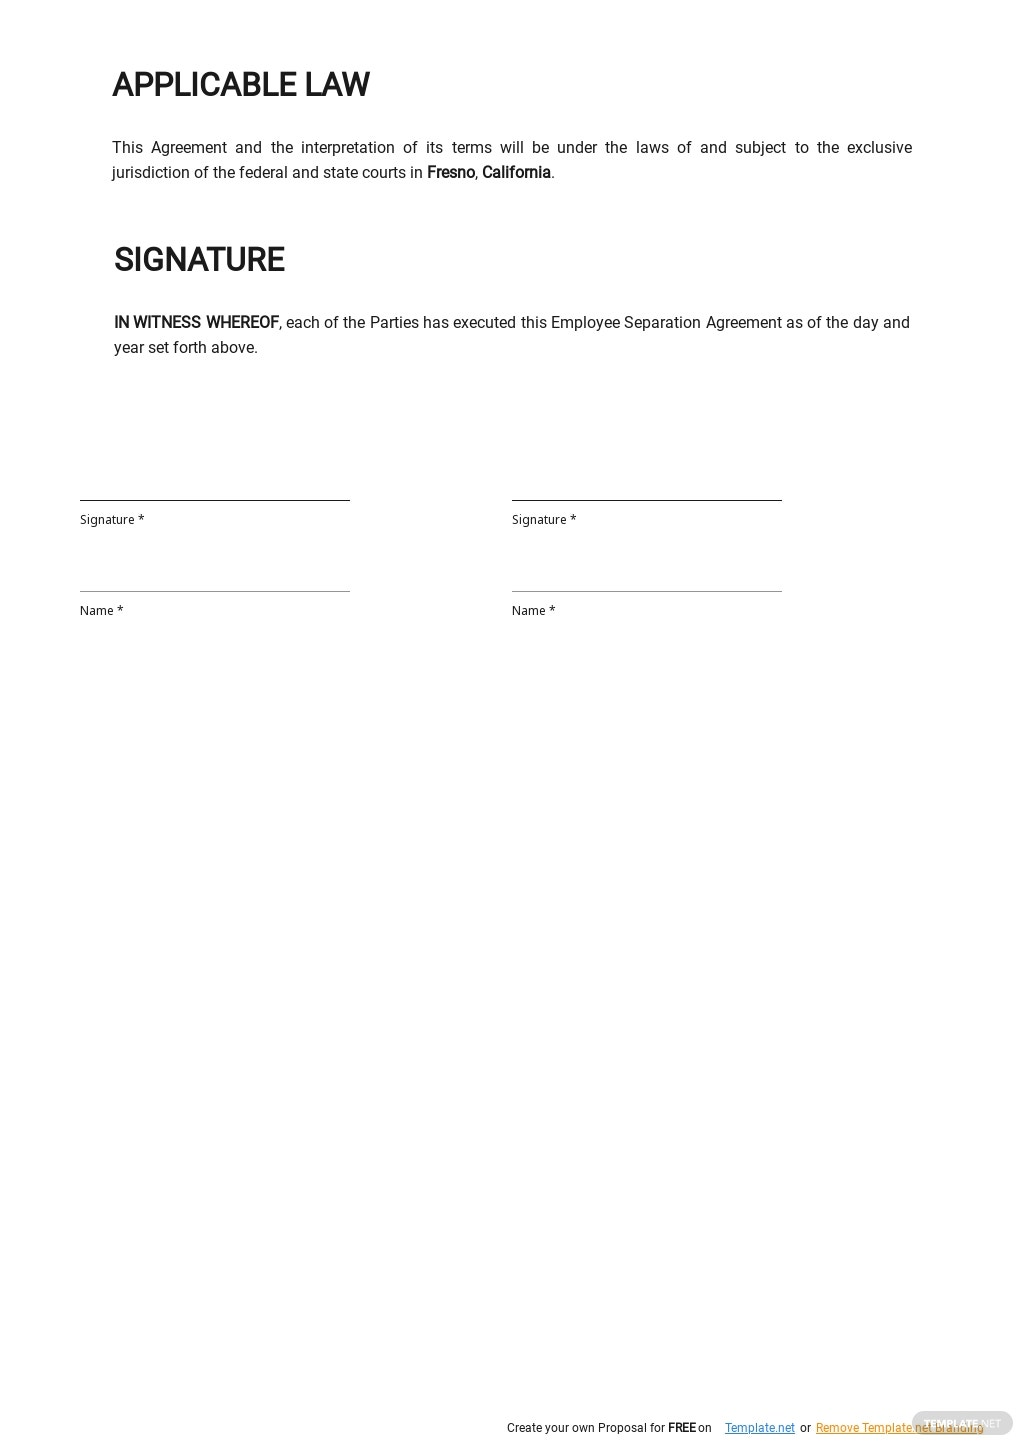 Simple Employee Separation Agreement Template 2.jpe